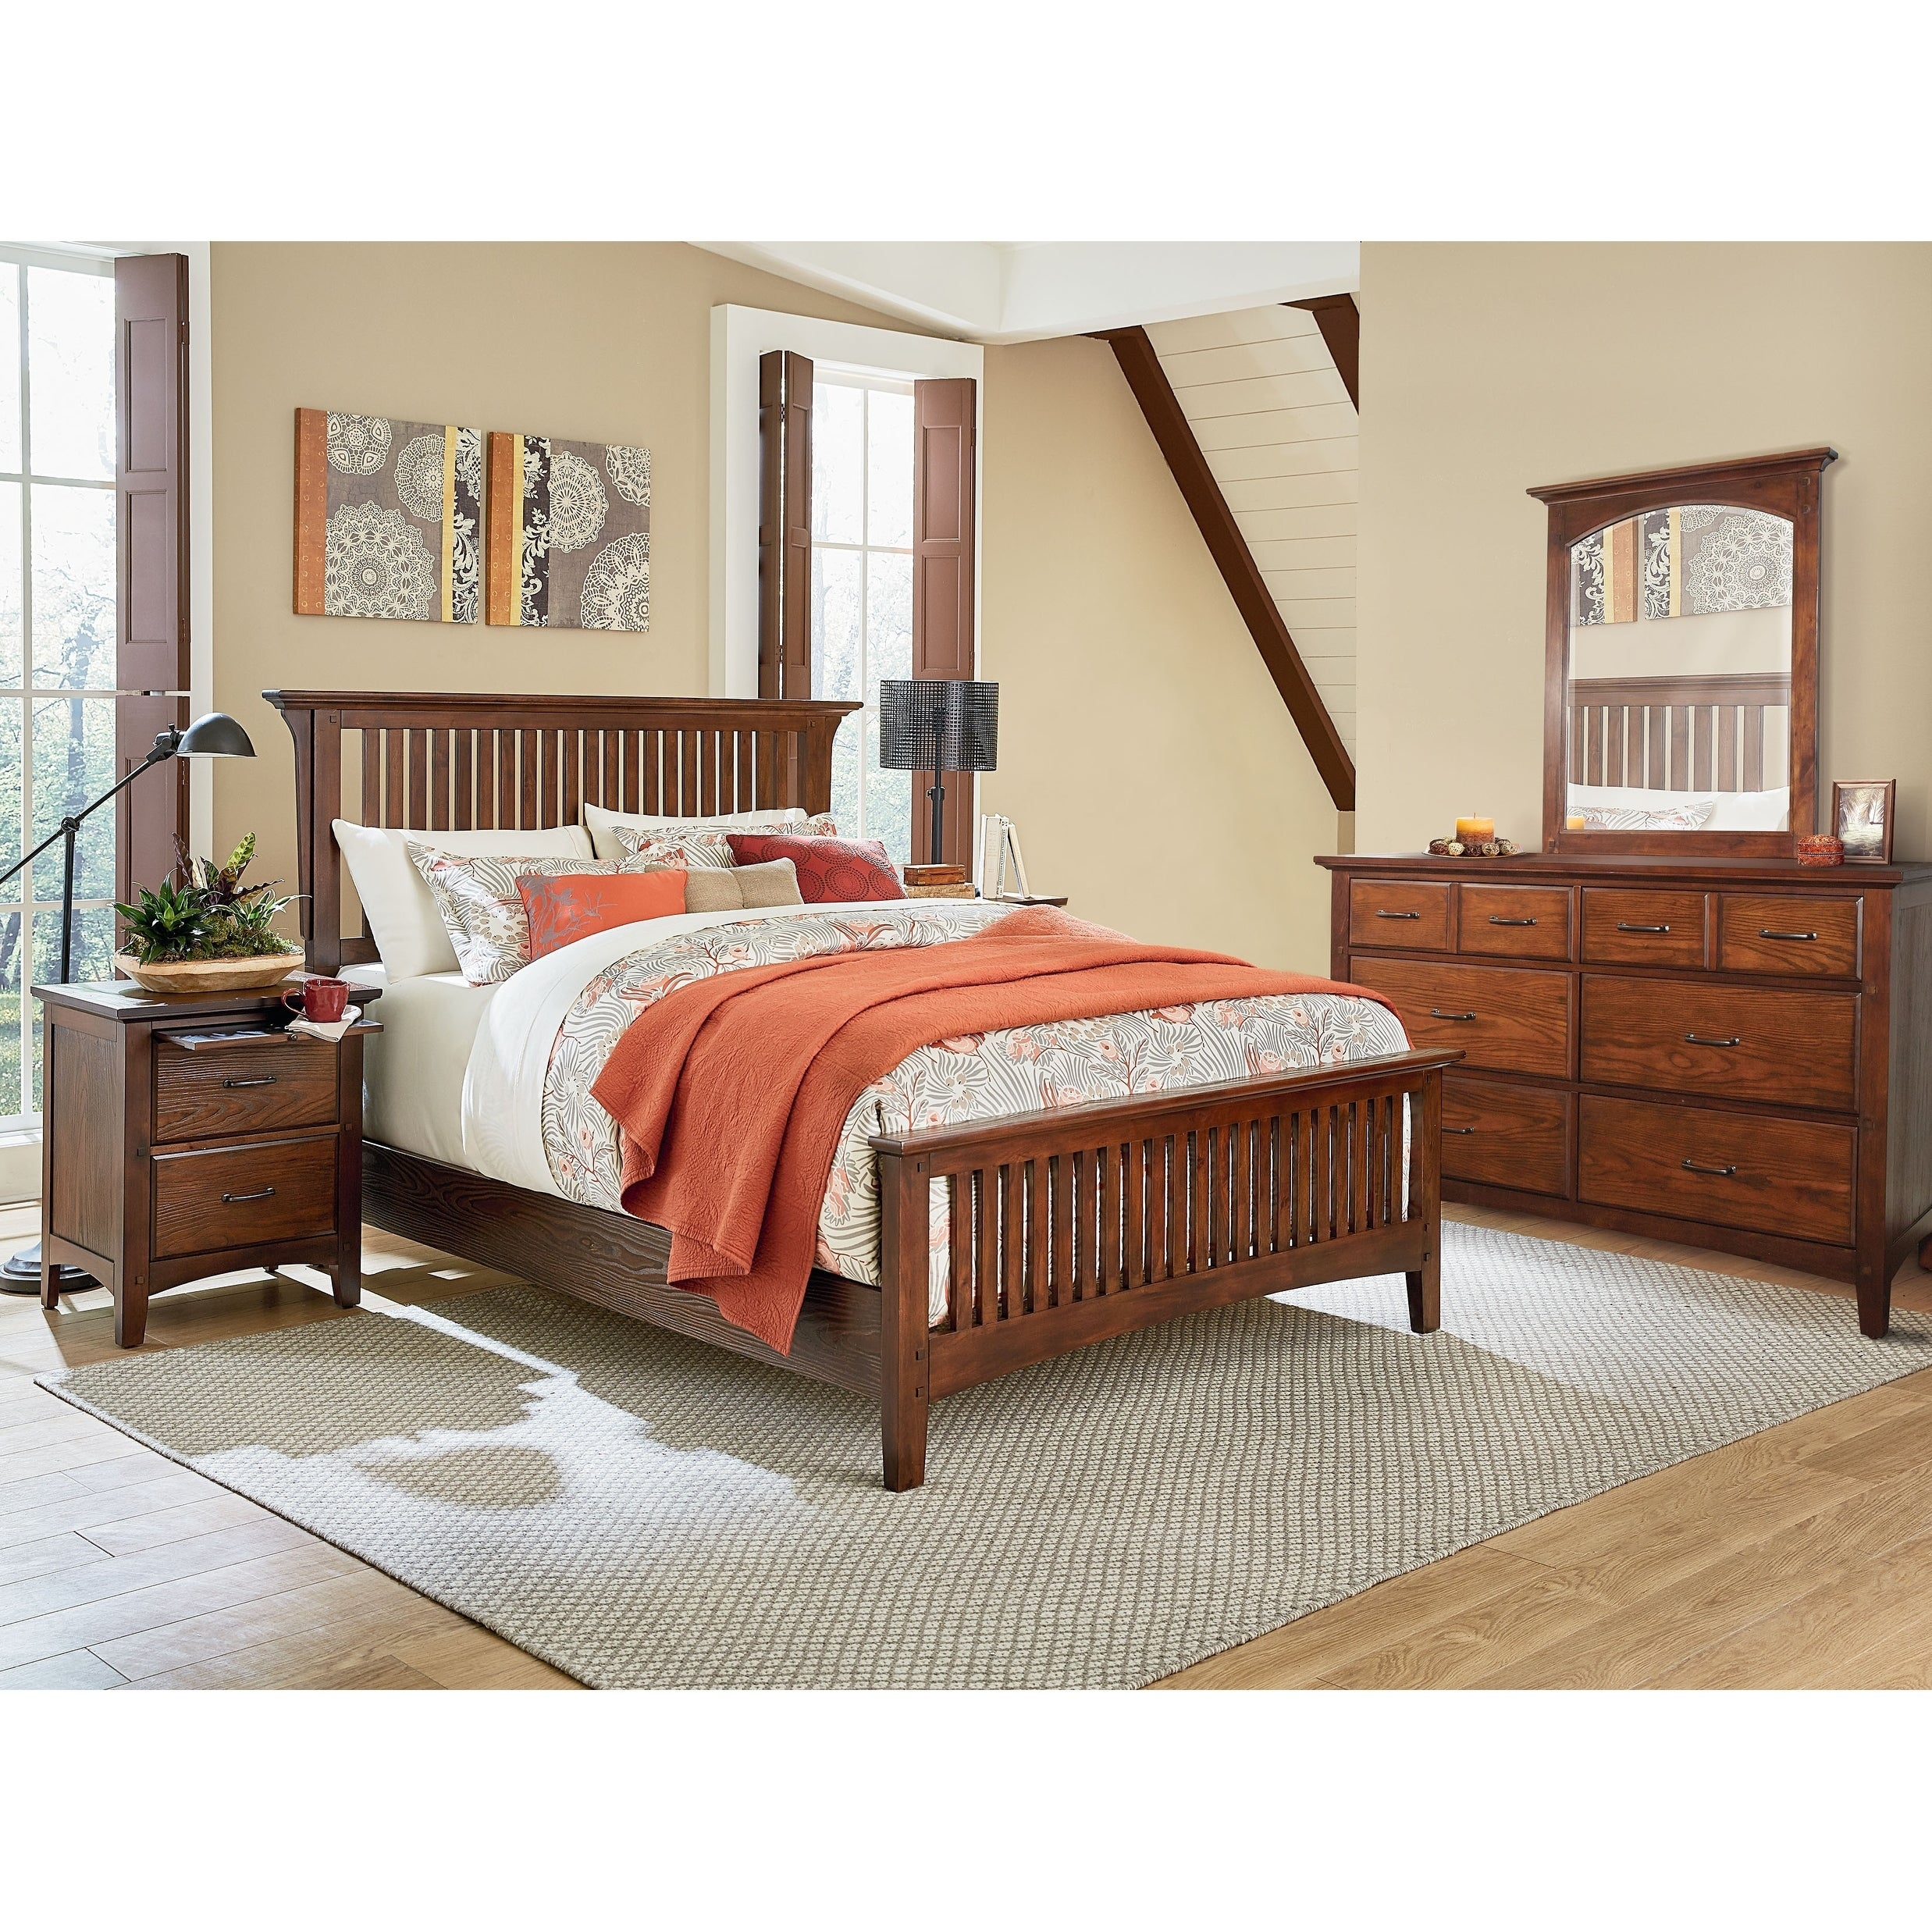 Shop Modern Mission Queen Bedroom Set With 2 Nightstands And 1 Dresser With Mirror On Sale Overstock 21174086